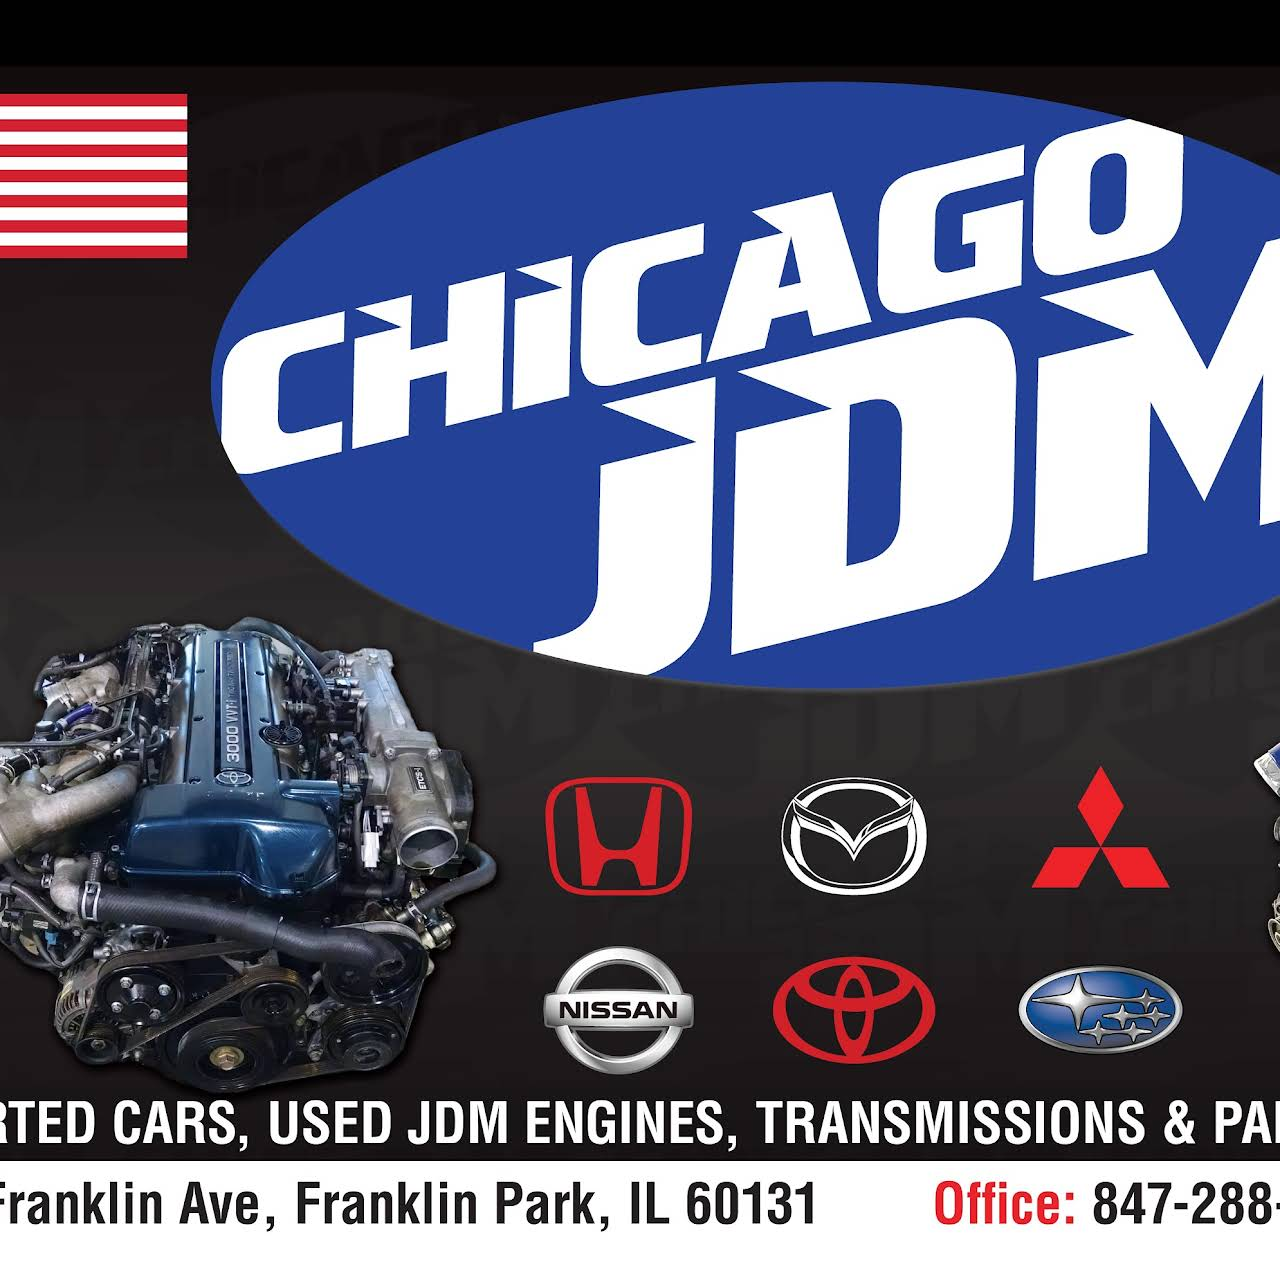 CHICAGO JDM - We Carry all kinds of Japanese Quality Engines